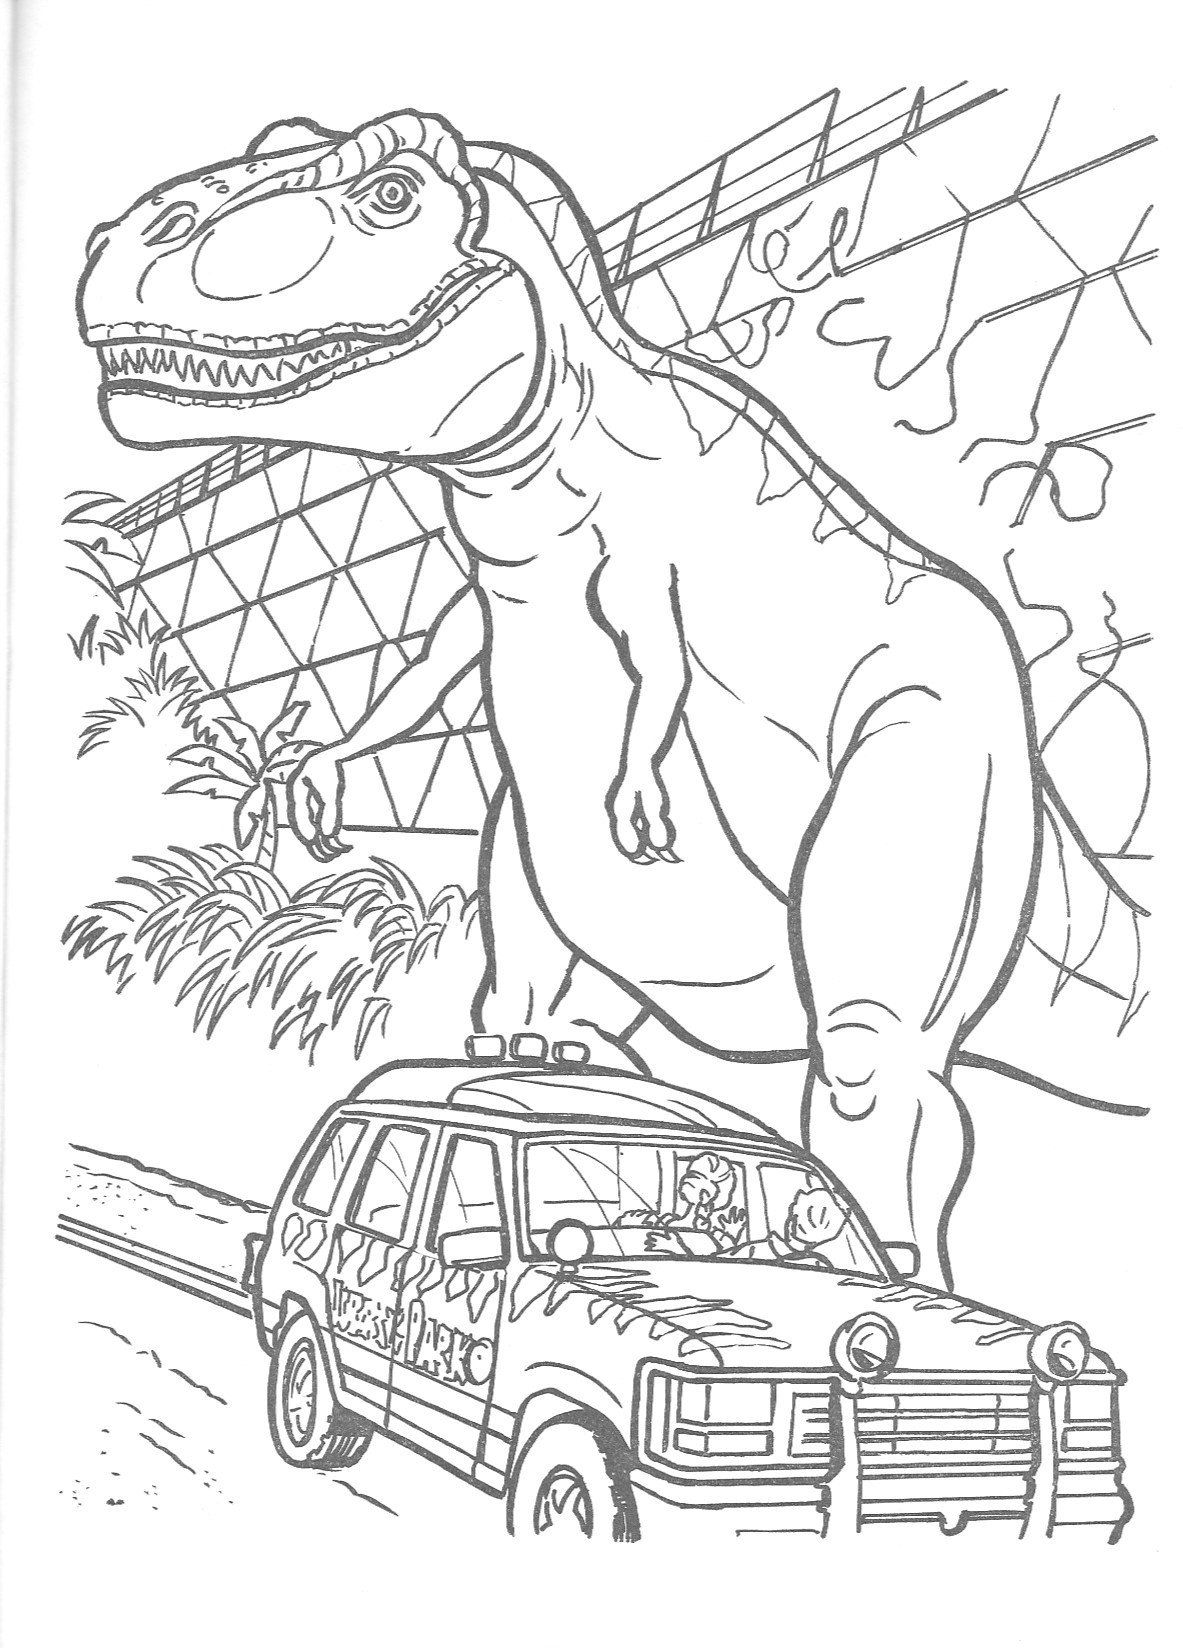 Jurassic Park Coloring Pages Jurassic Park Official Coloring Page Jura Printable Valentines Coloring Pages Valentine Coloring Pages Thanksgiving Coloring Pages